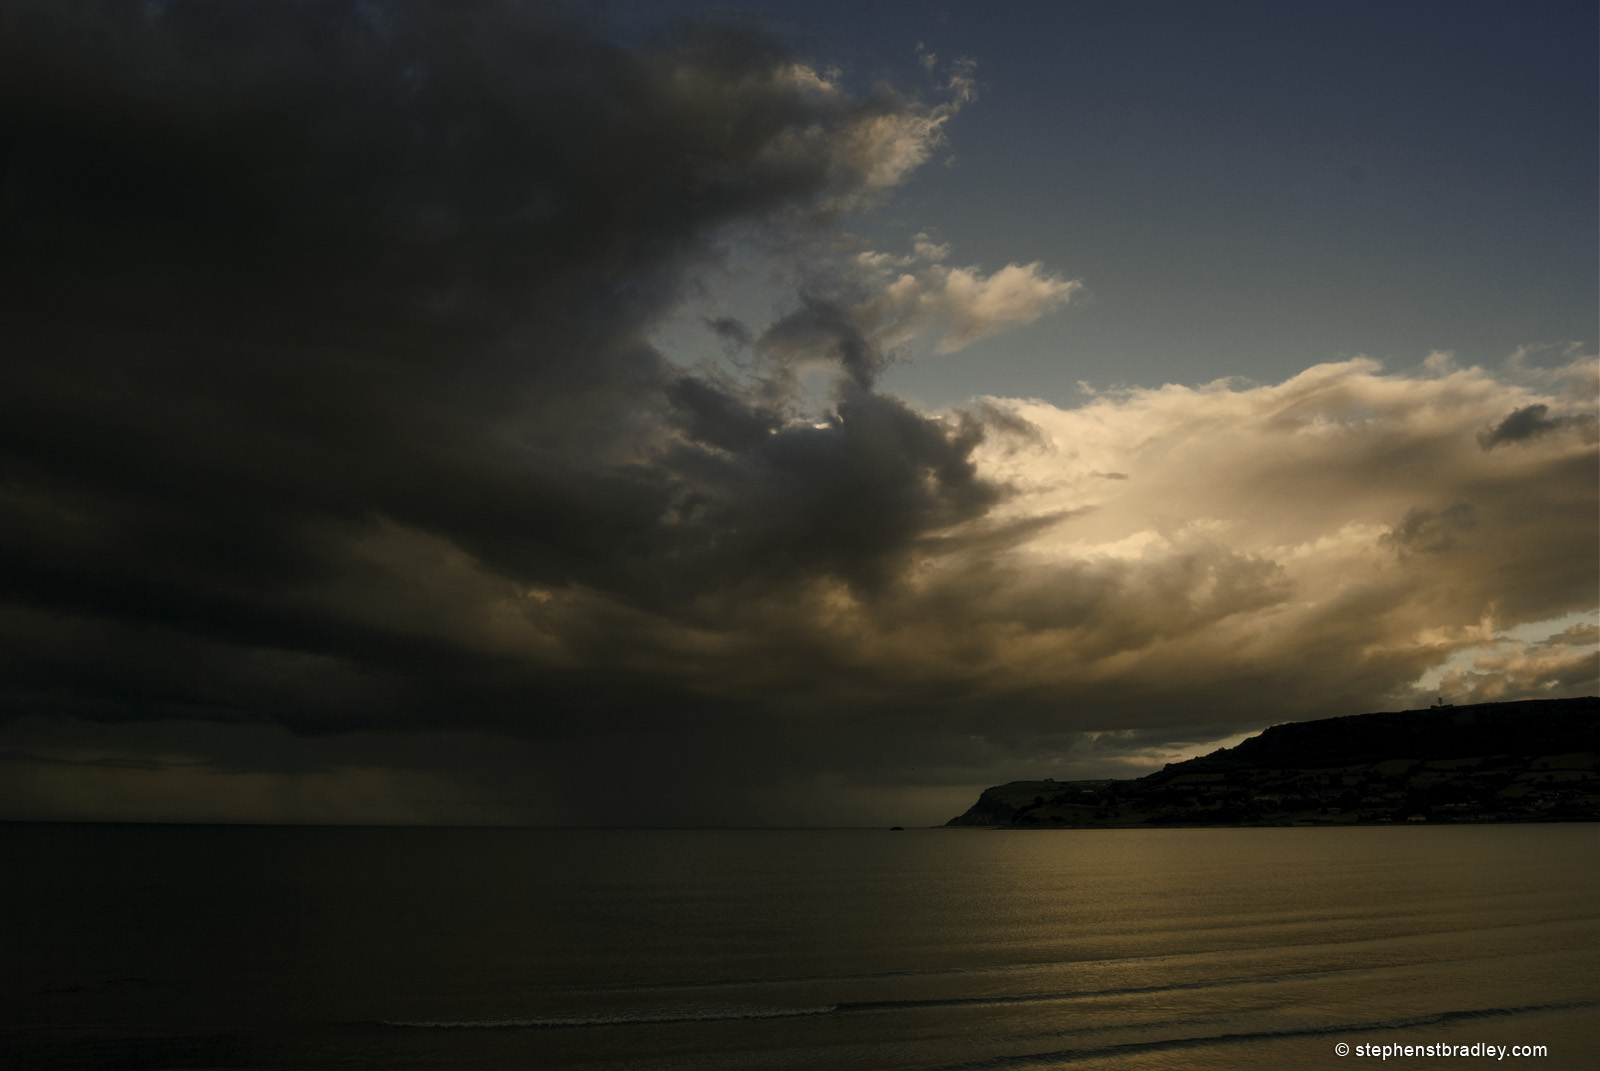 Landscape photograph of rain clouds over Irish Sea from Carnlough, Northern Ireland, by Stephen Bradley photographer - photograph 2546.